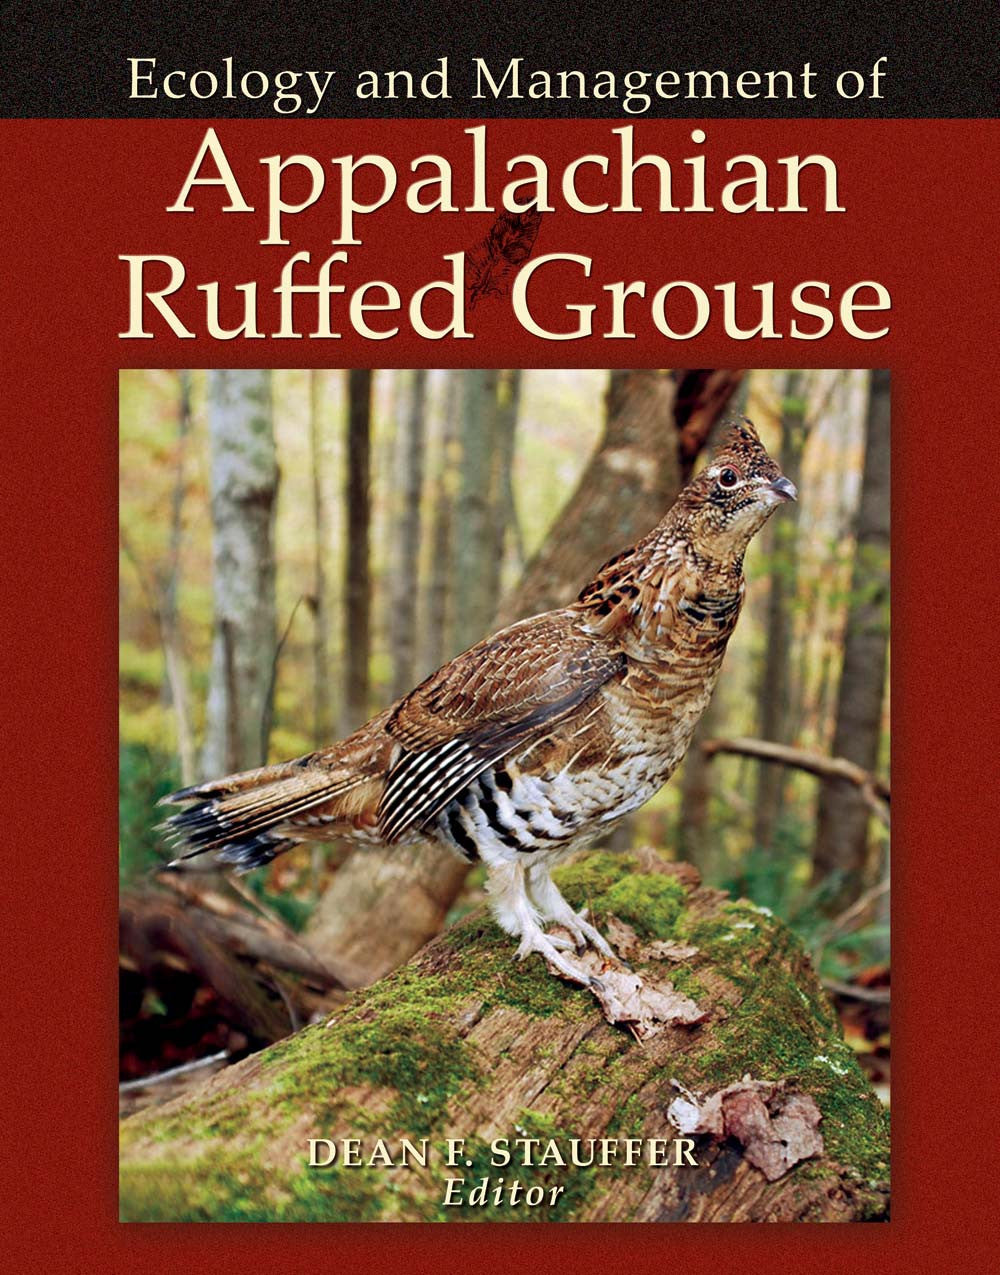 Ecology & Management of Appalachian Ruffed Grouse